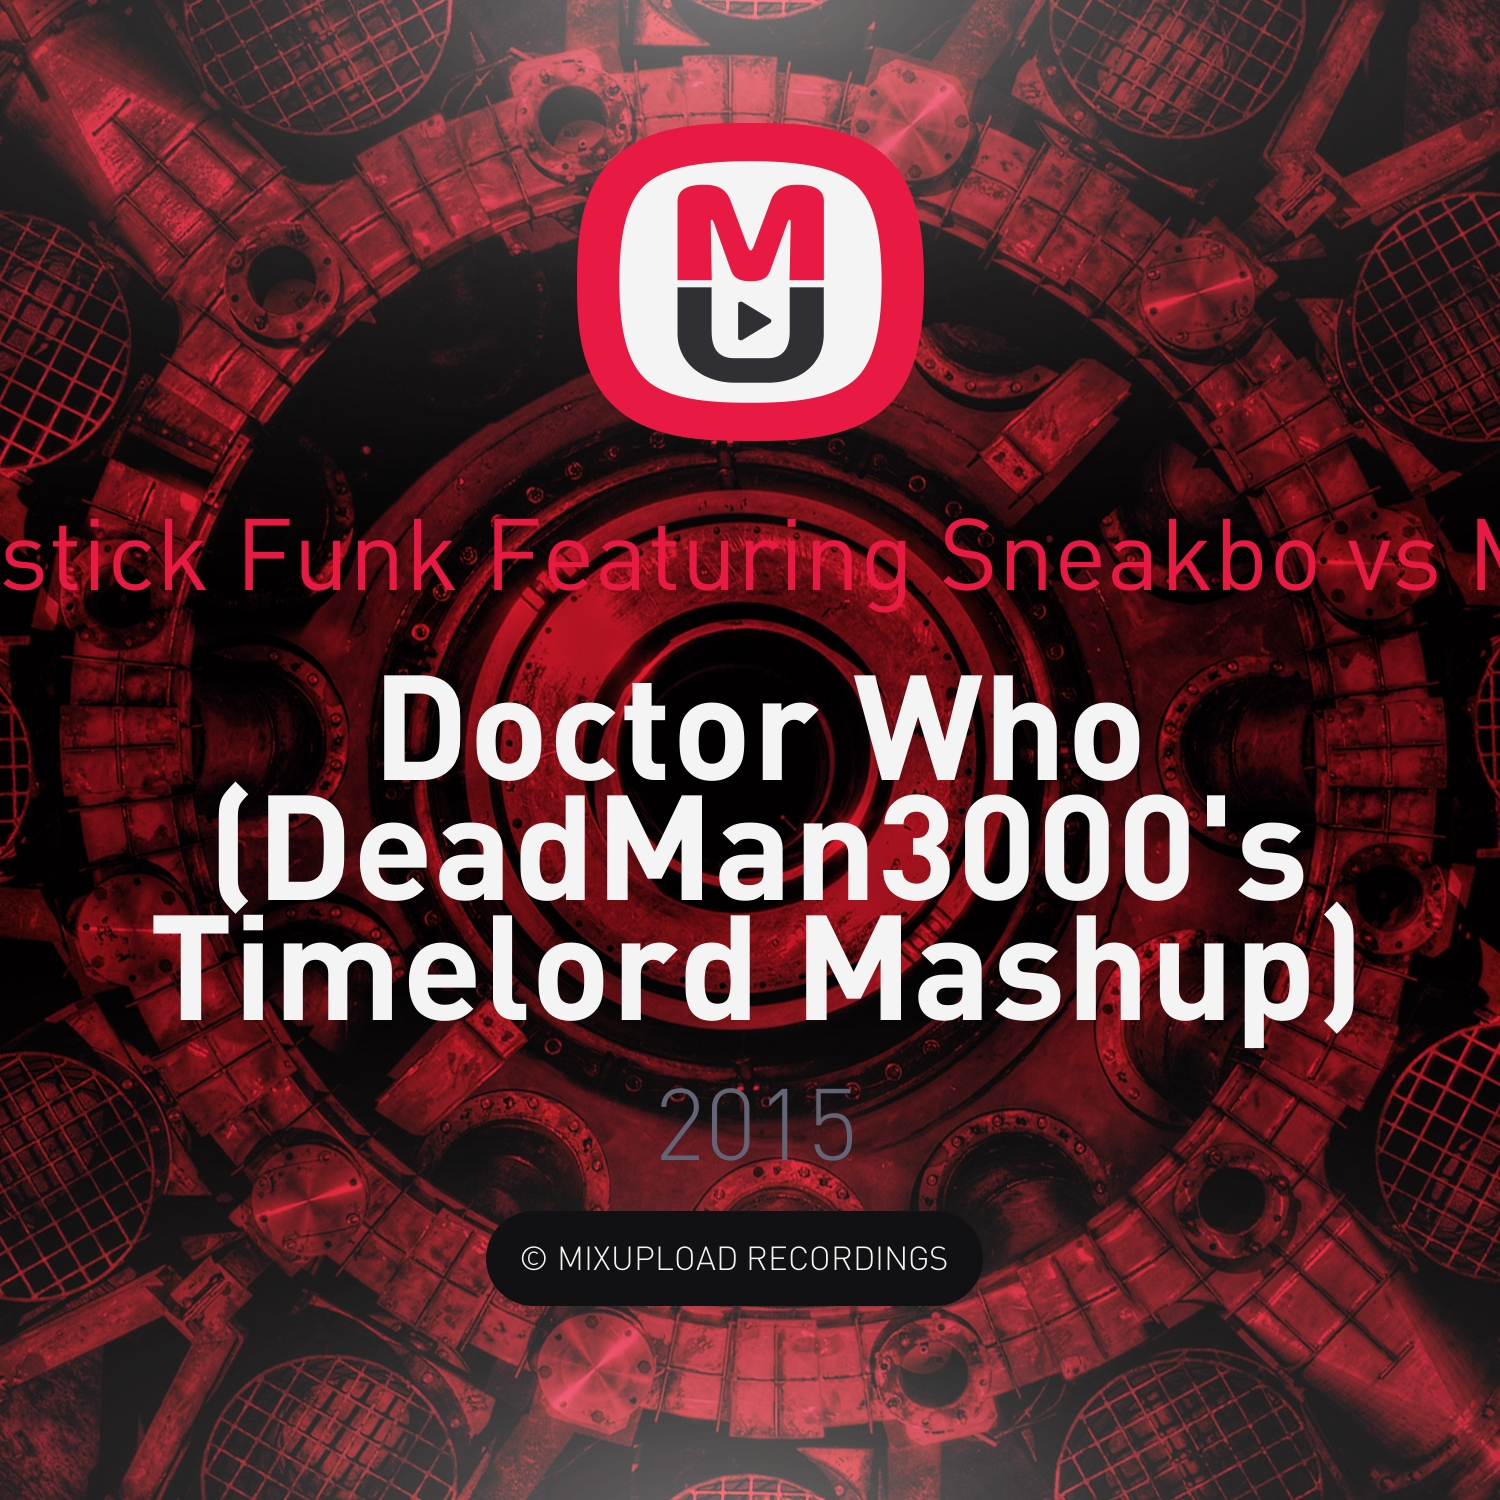 Tujamo Plastik Funk Featuring Sneakbo vs Murray Gold - Doctor Who (DeadMan3000\'s Timelord Mashup)